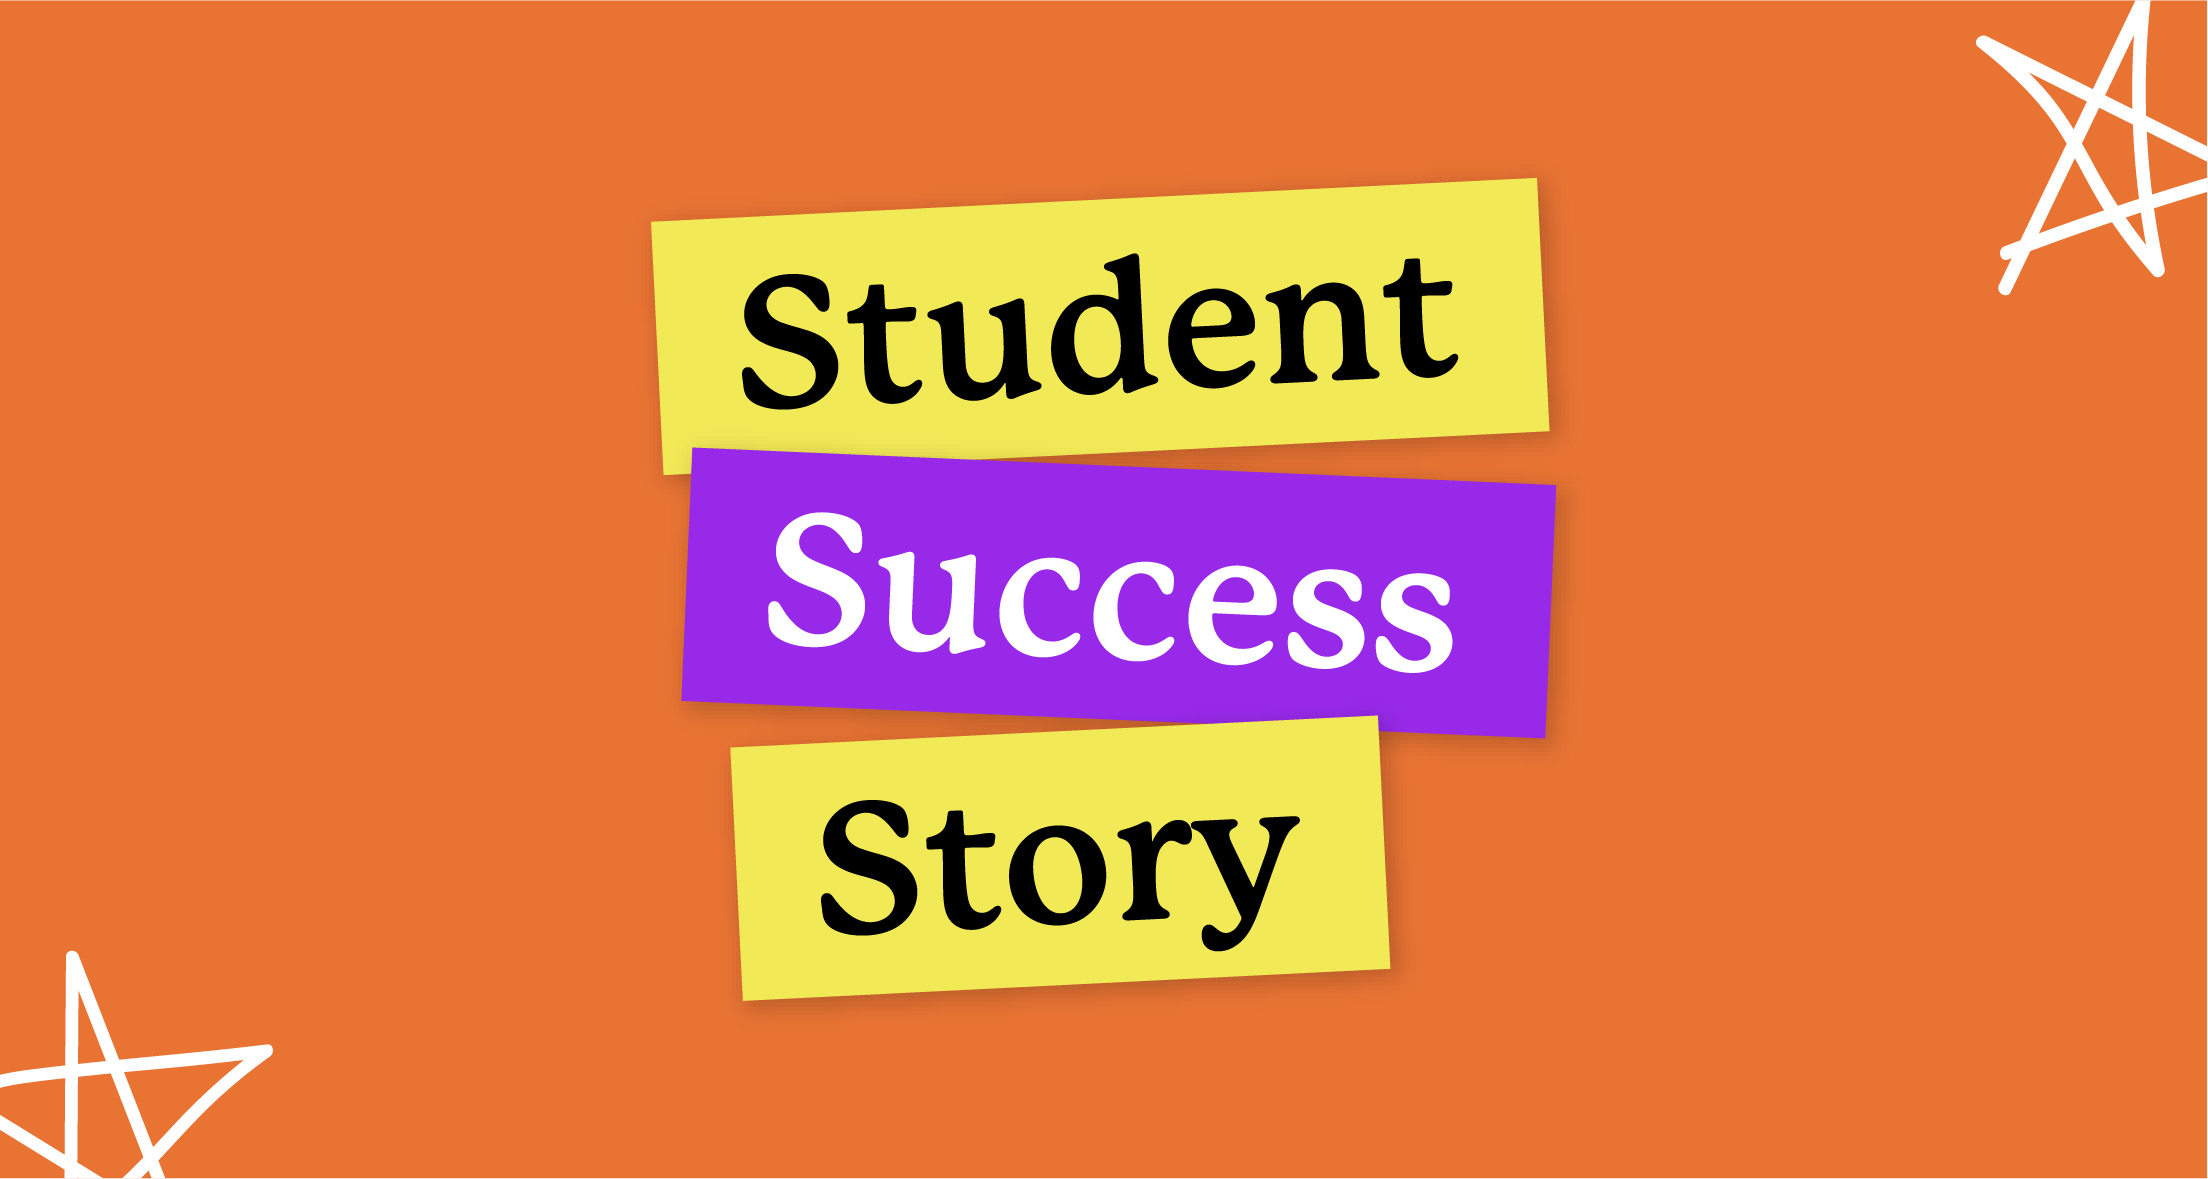 An orange graphic that says 'Student Success Story'